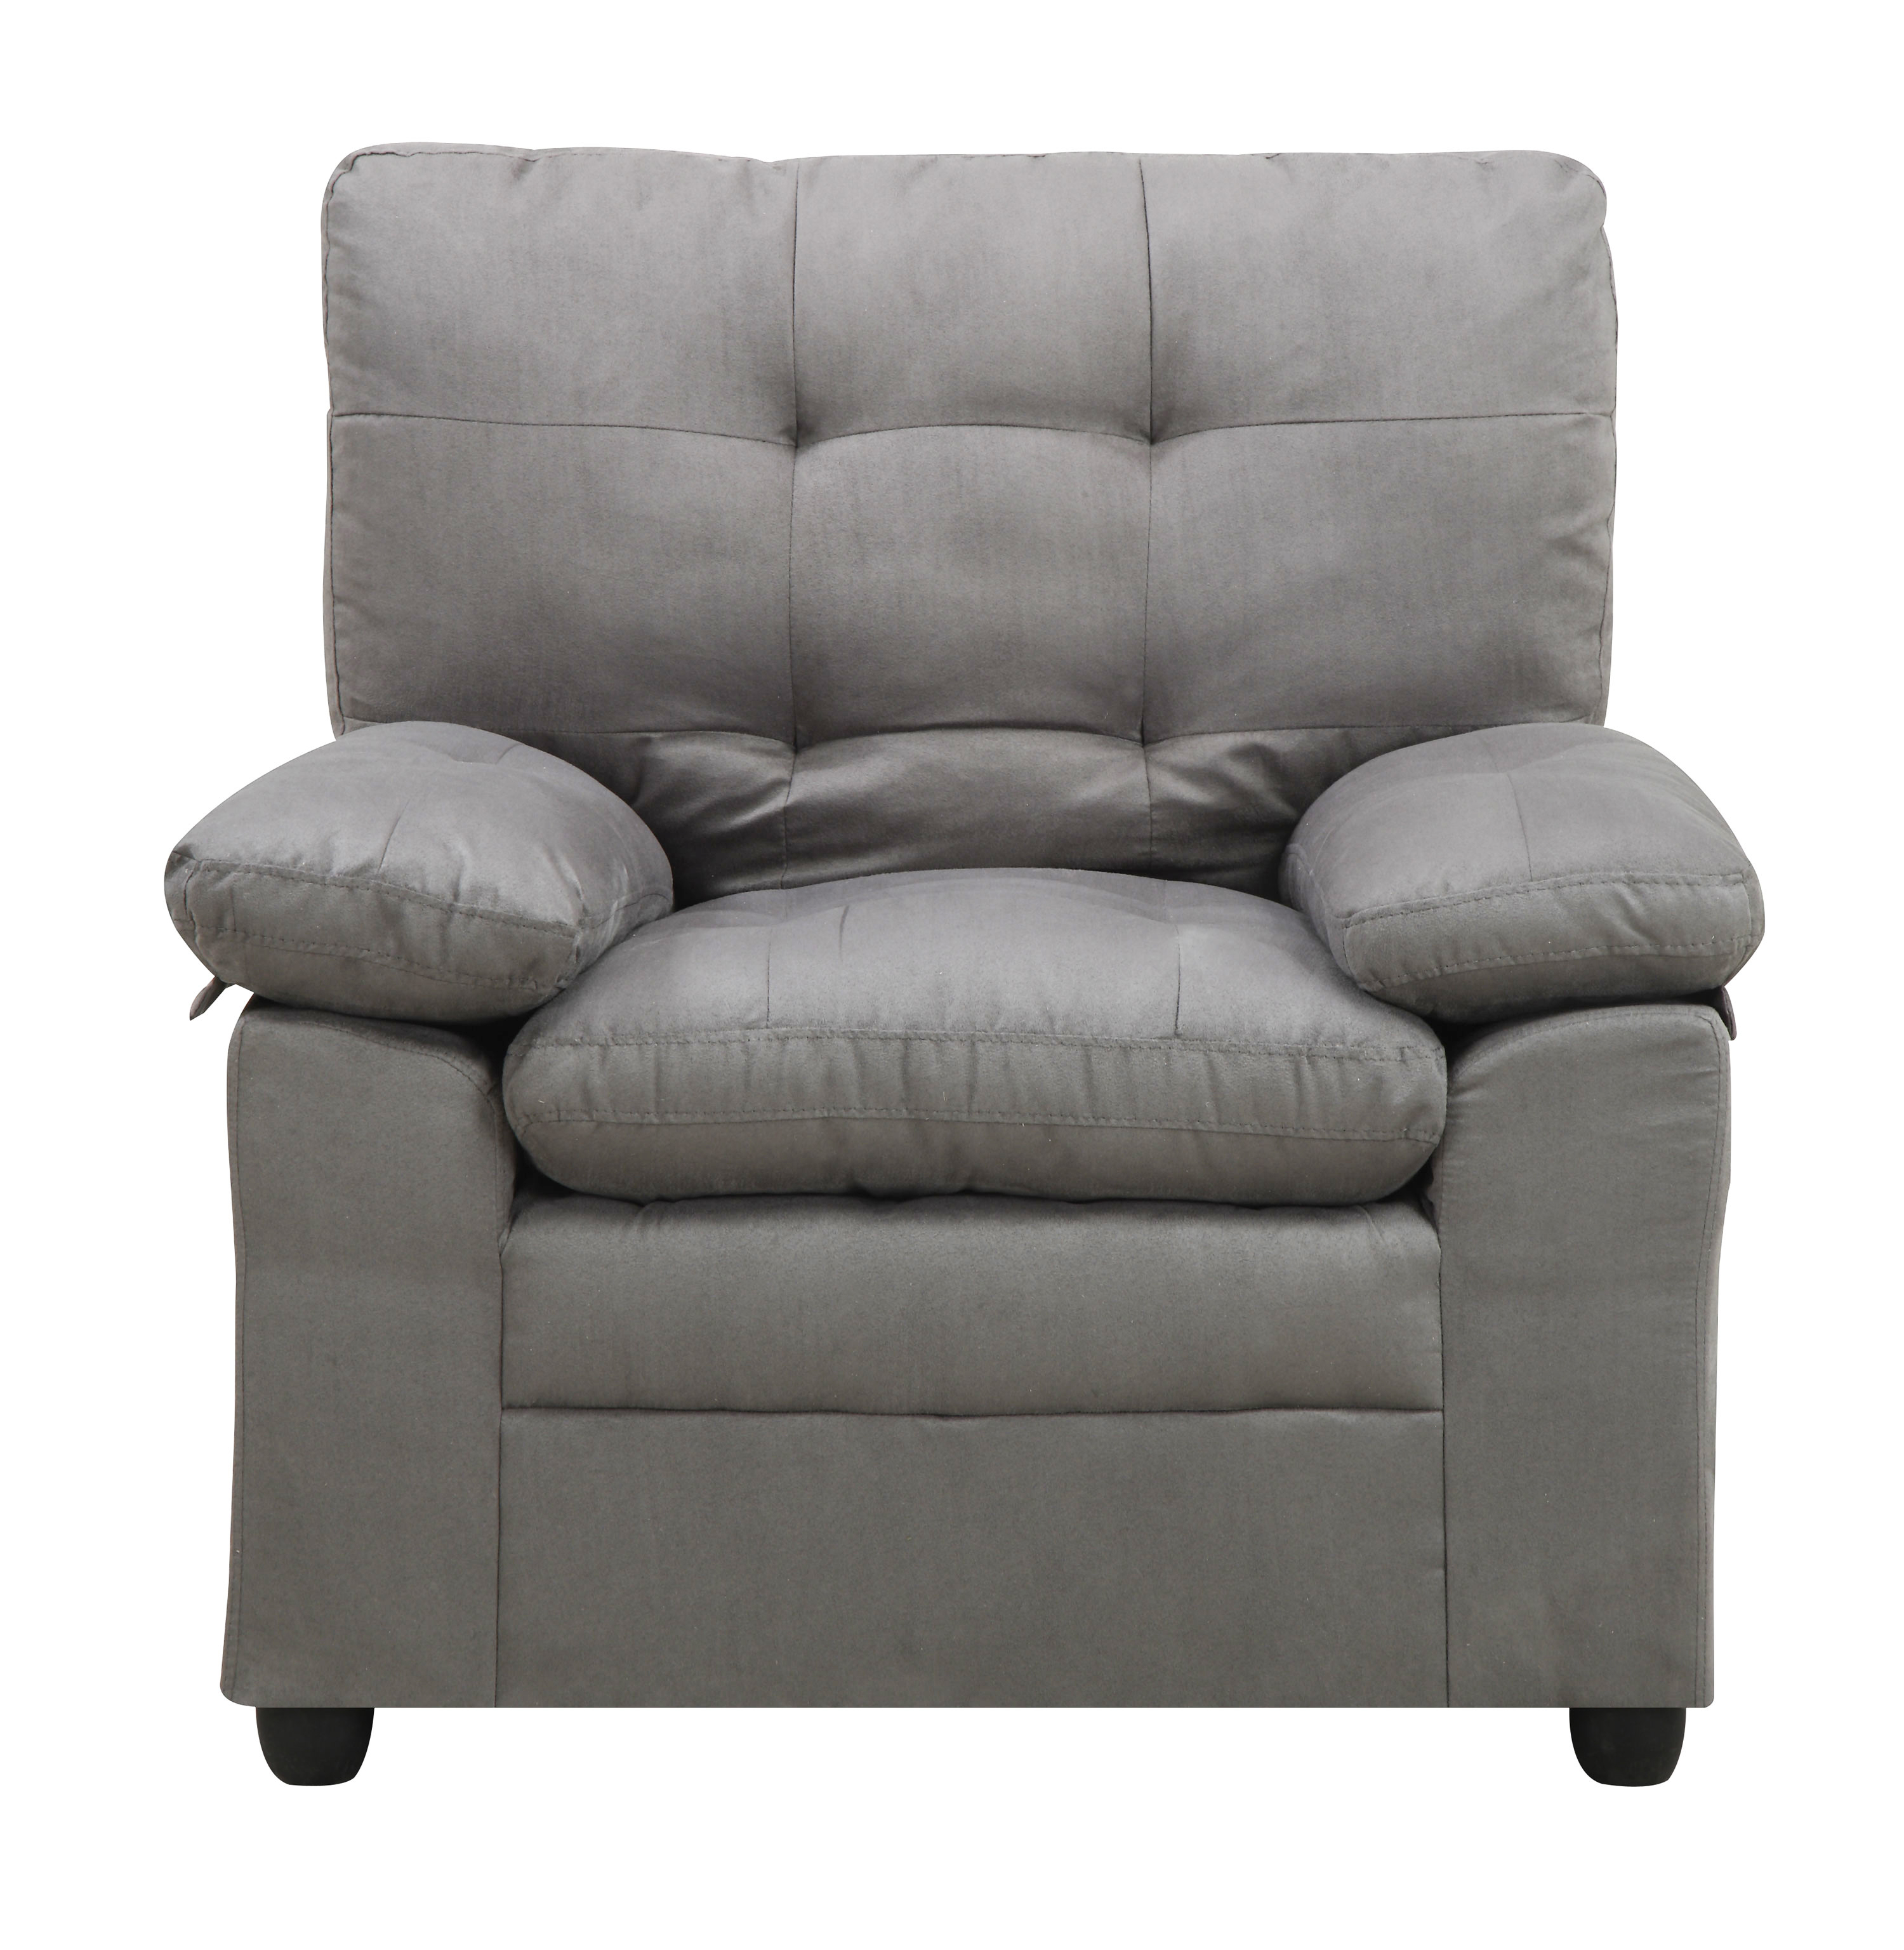 Mainstays Buchannan Upholstered Chair, Multiple Colors